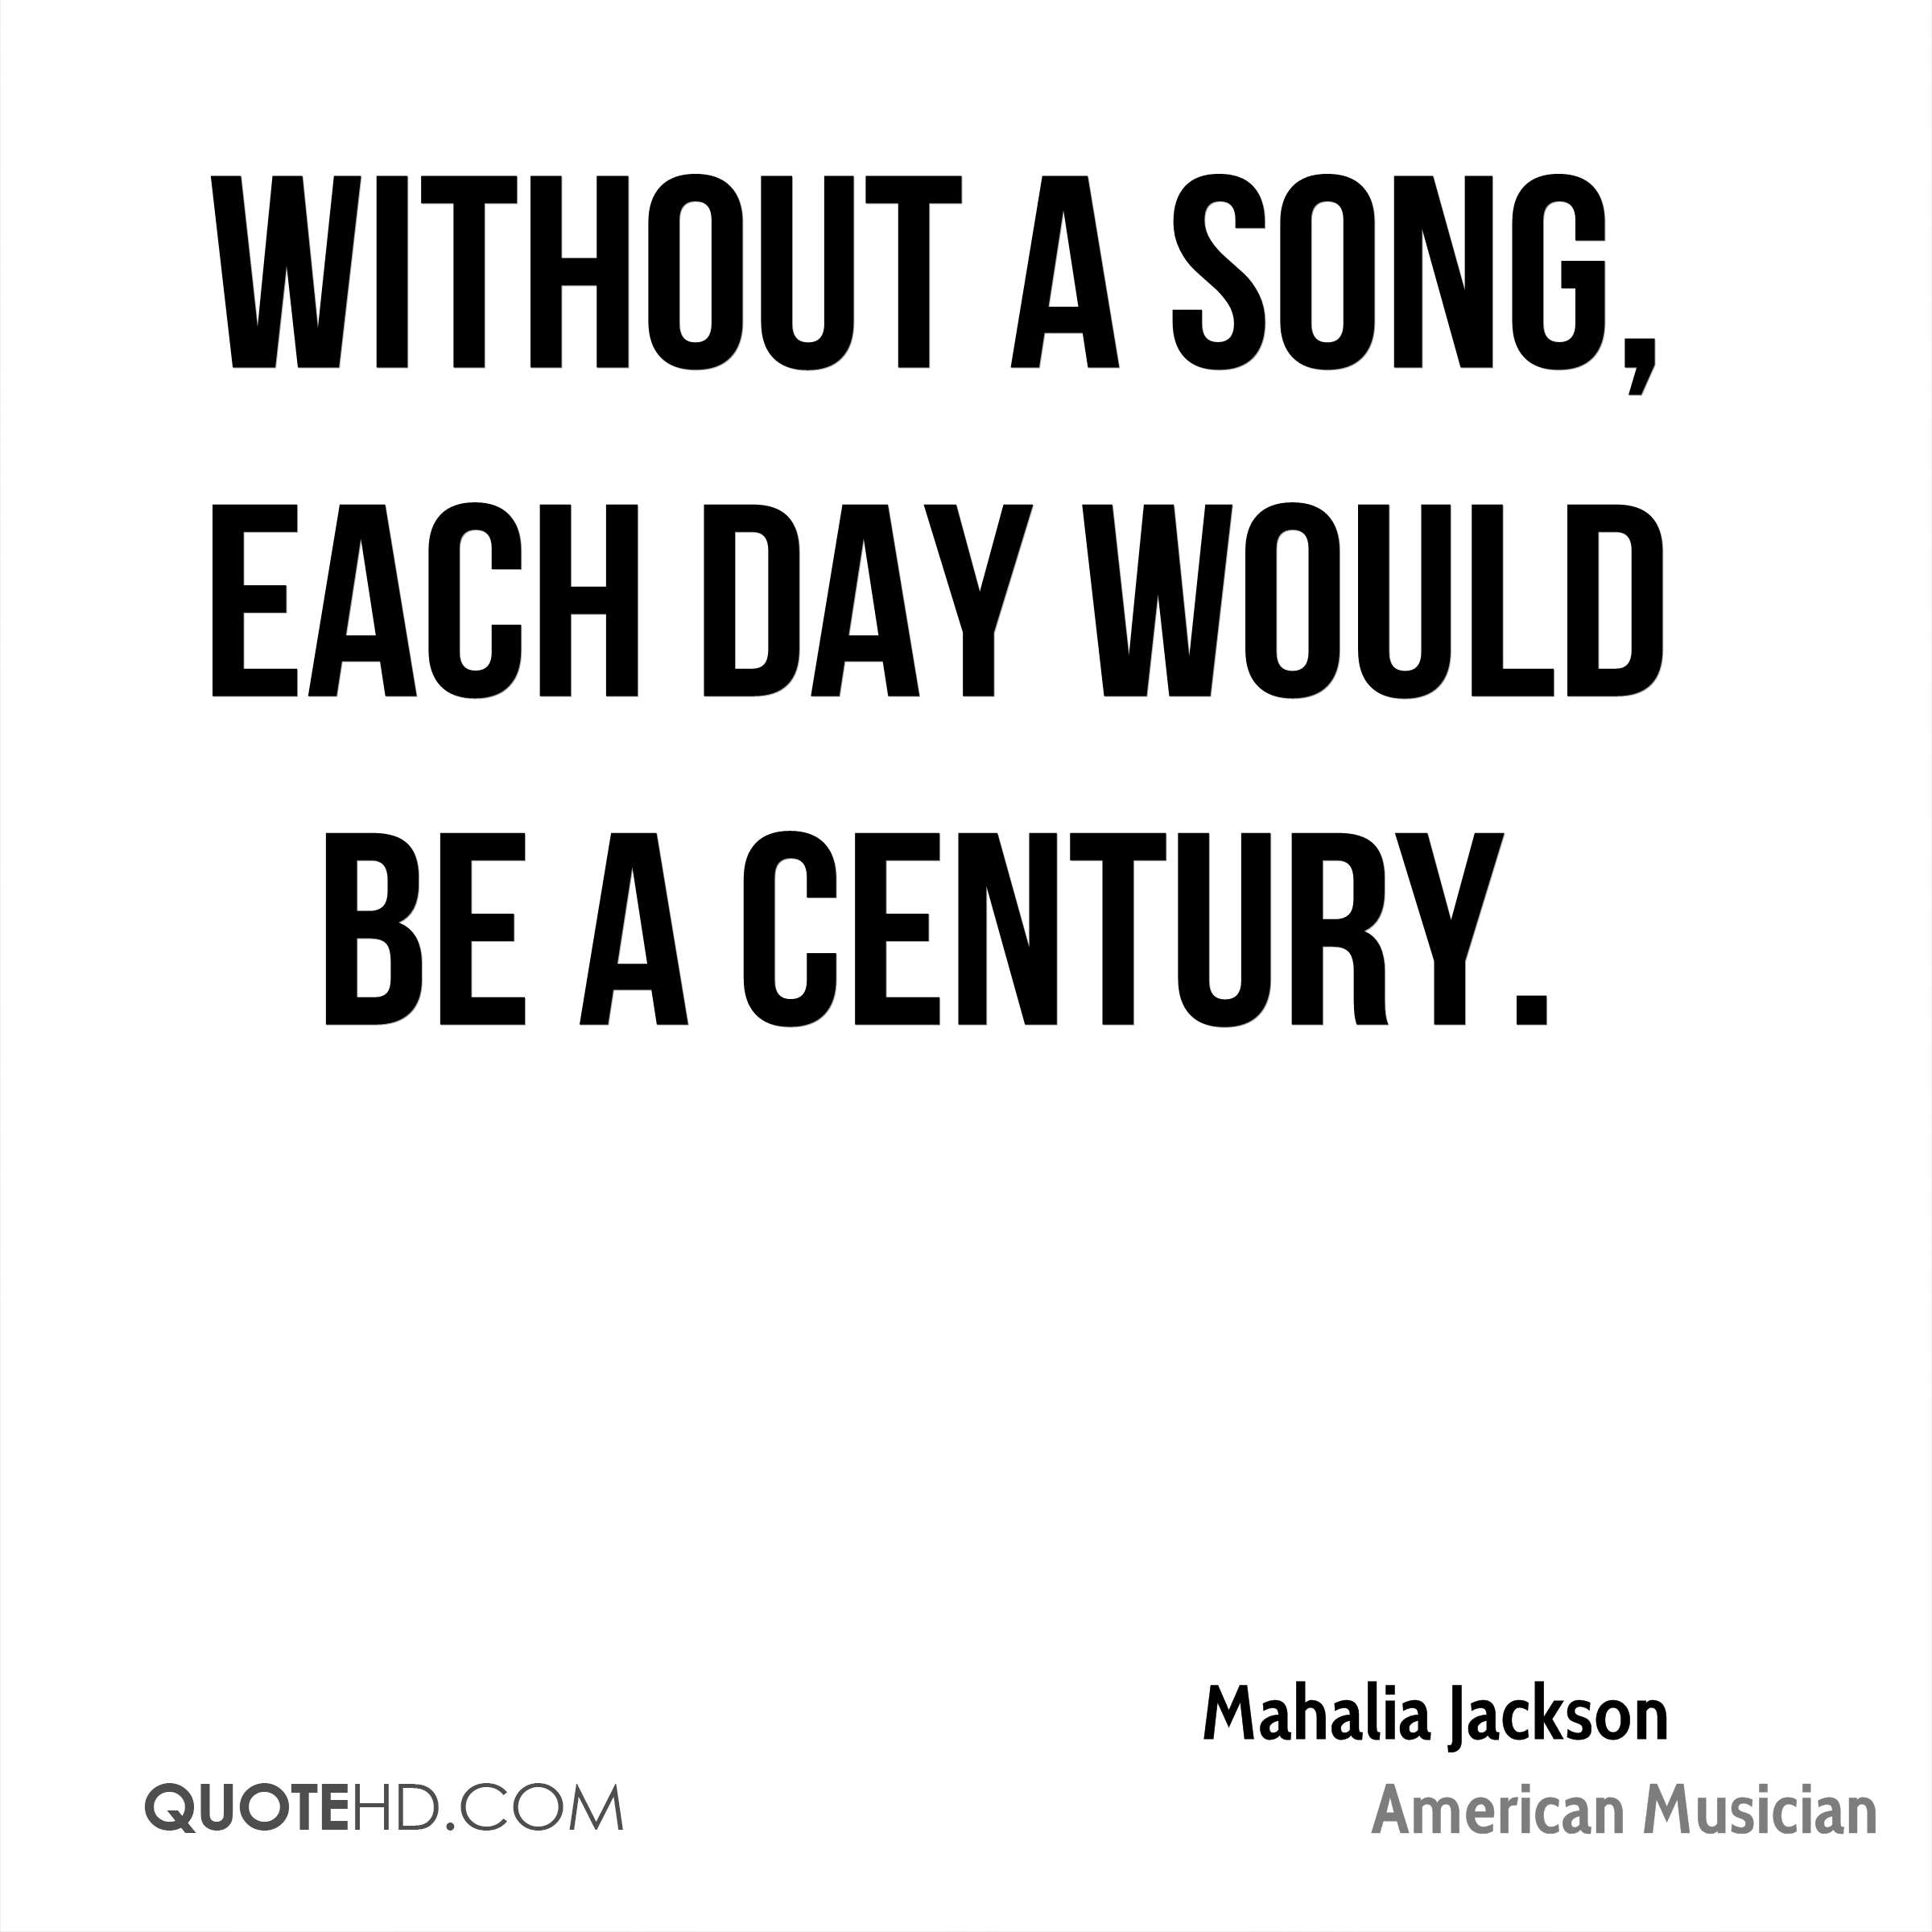 Without a song, each day would be a century.